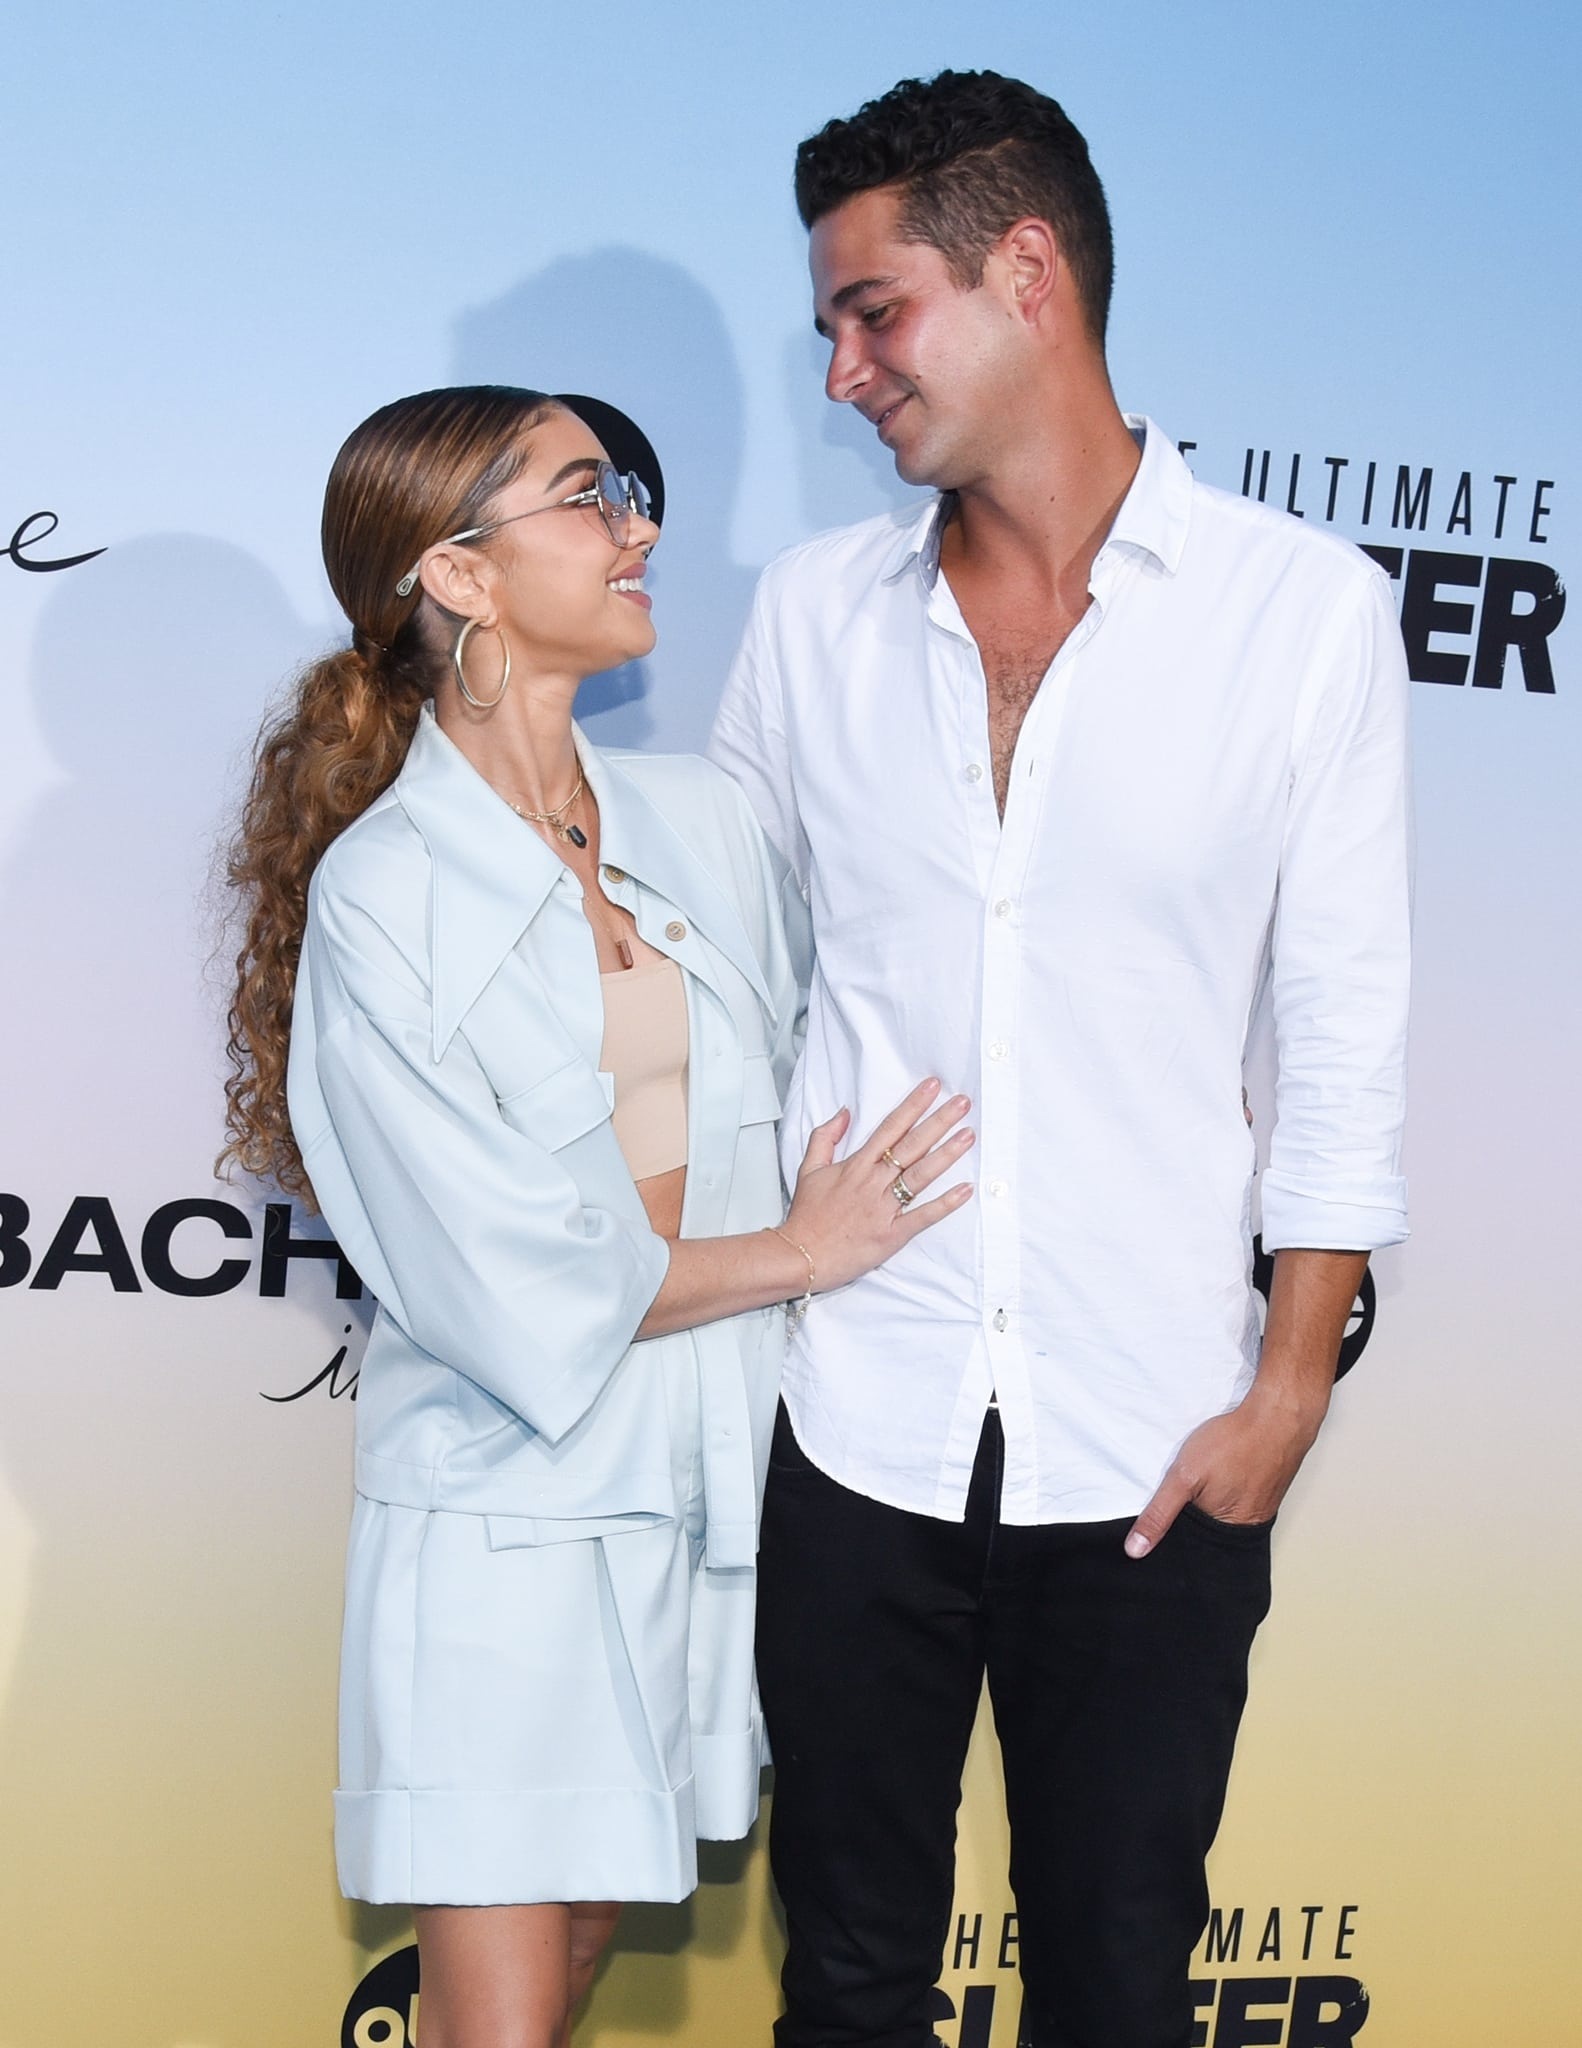 Sarah Hyland and fiancé Wells Adams at ABC's Bachelor In Paradise and The Ultimate Surfer premiere in Santa Monica on August 12, 2021